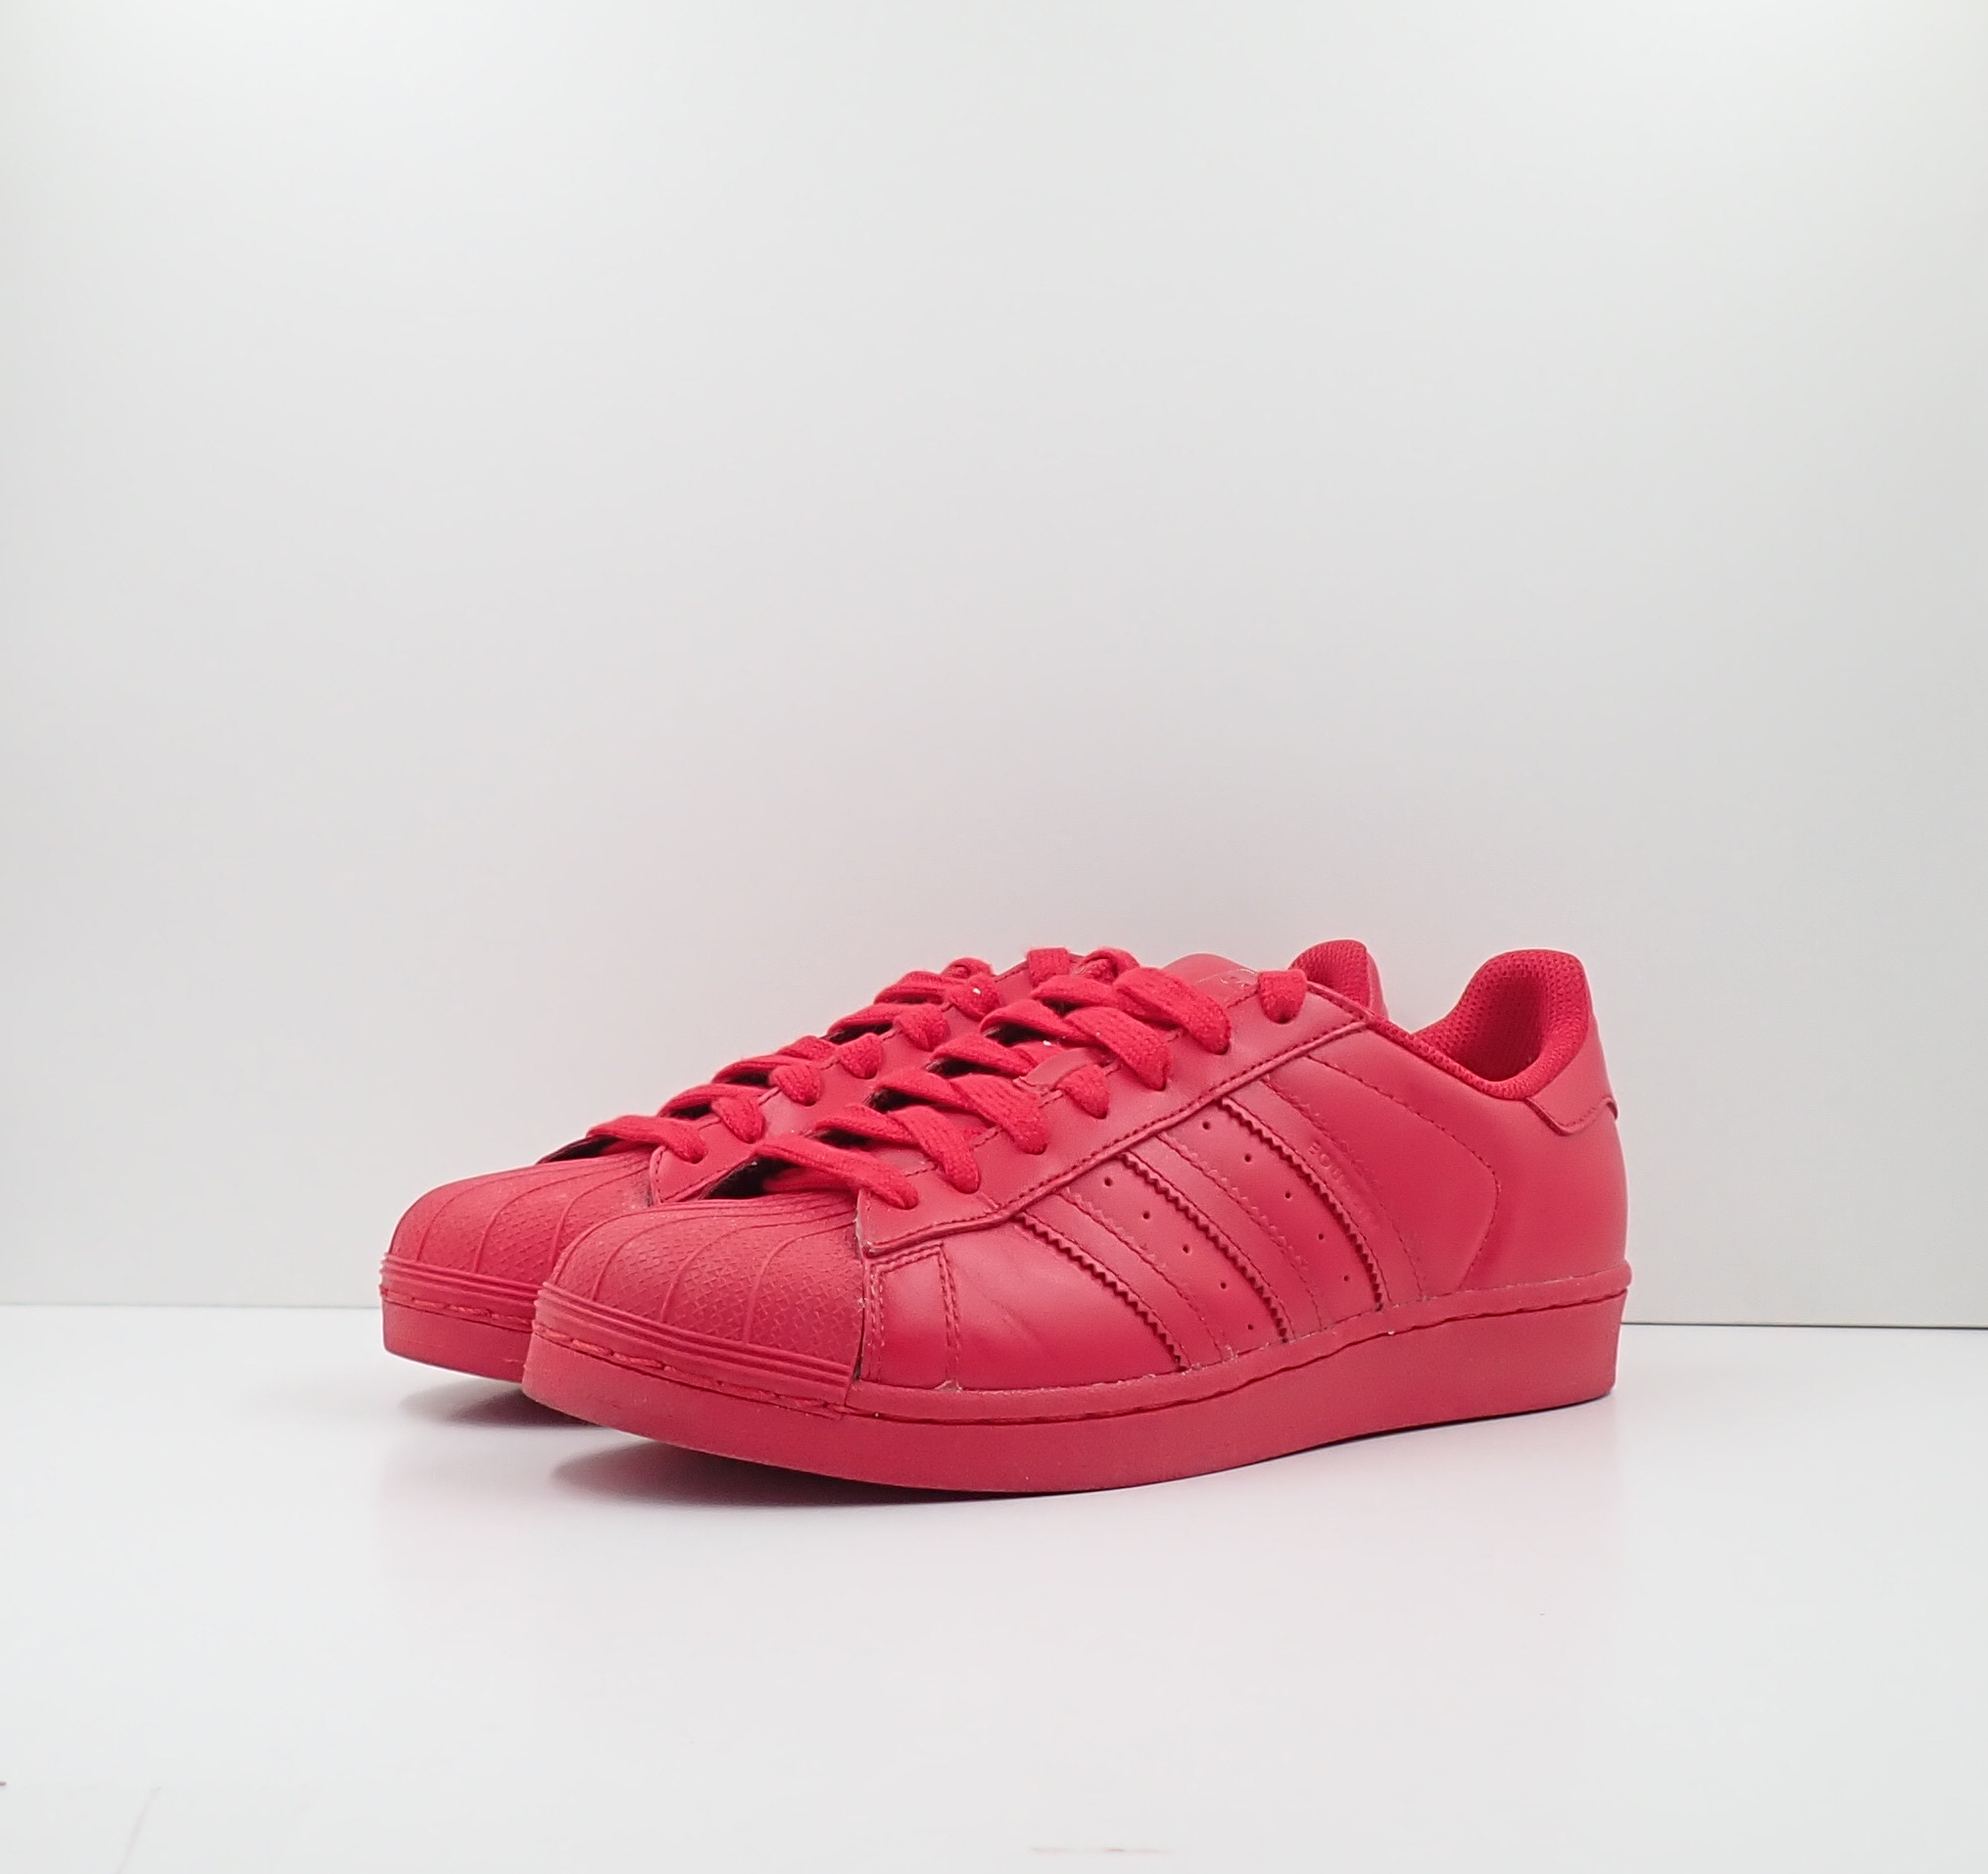 Adidas Superstar Supercolor Pack Red